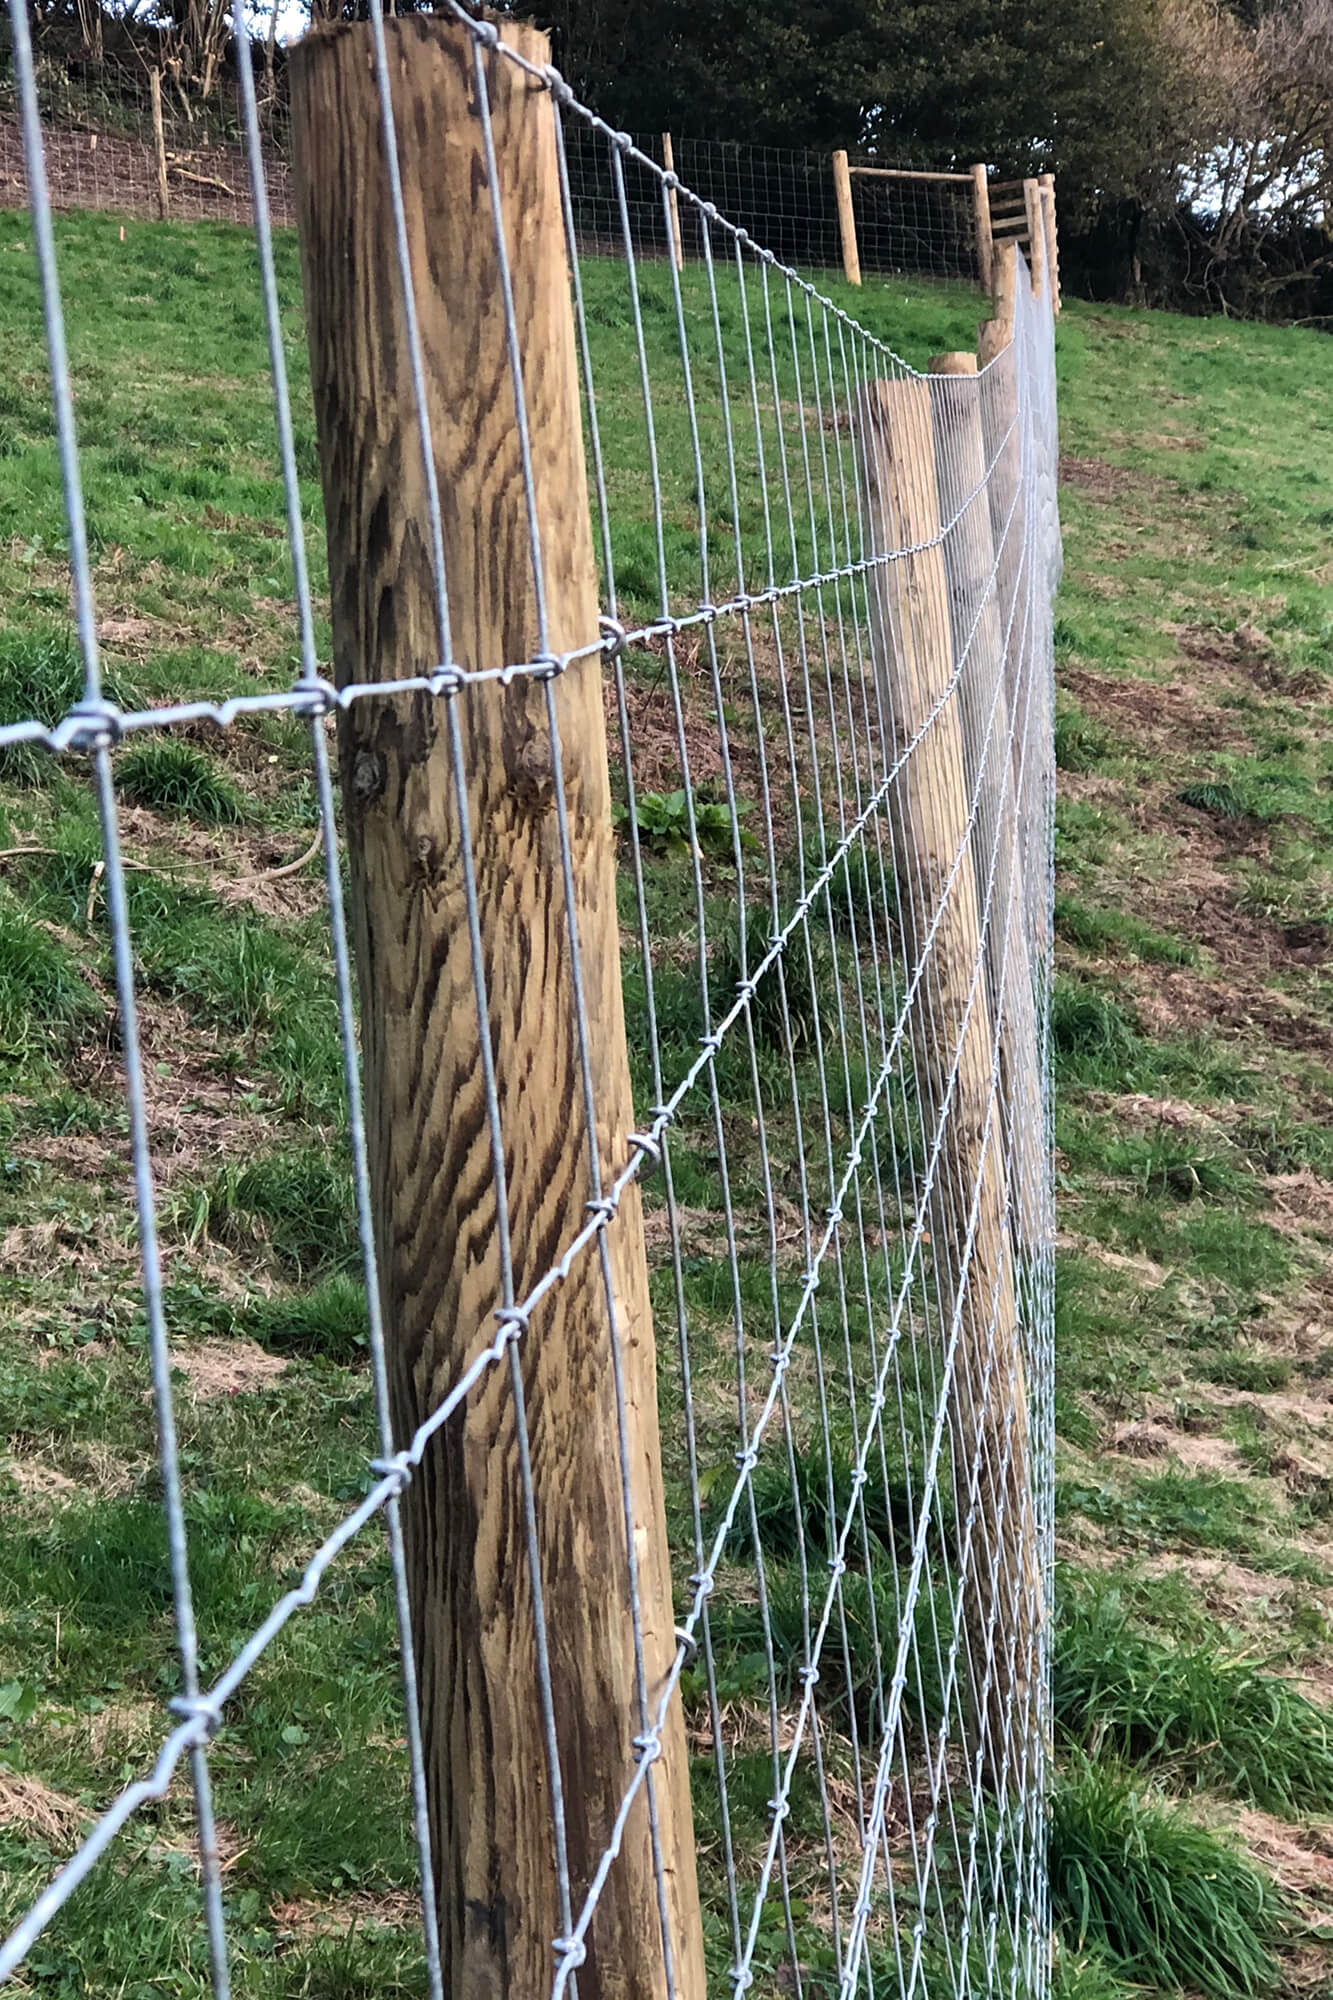 Good quality fencing materials sourced locally